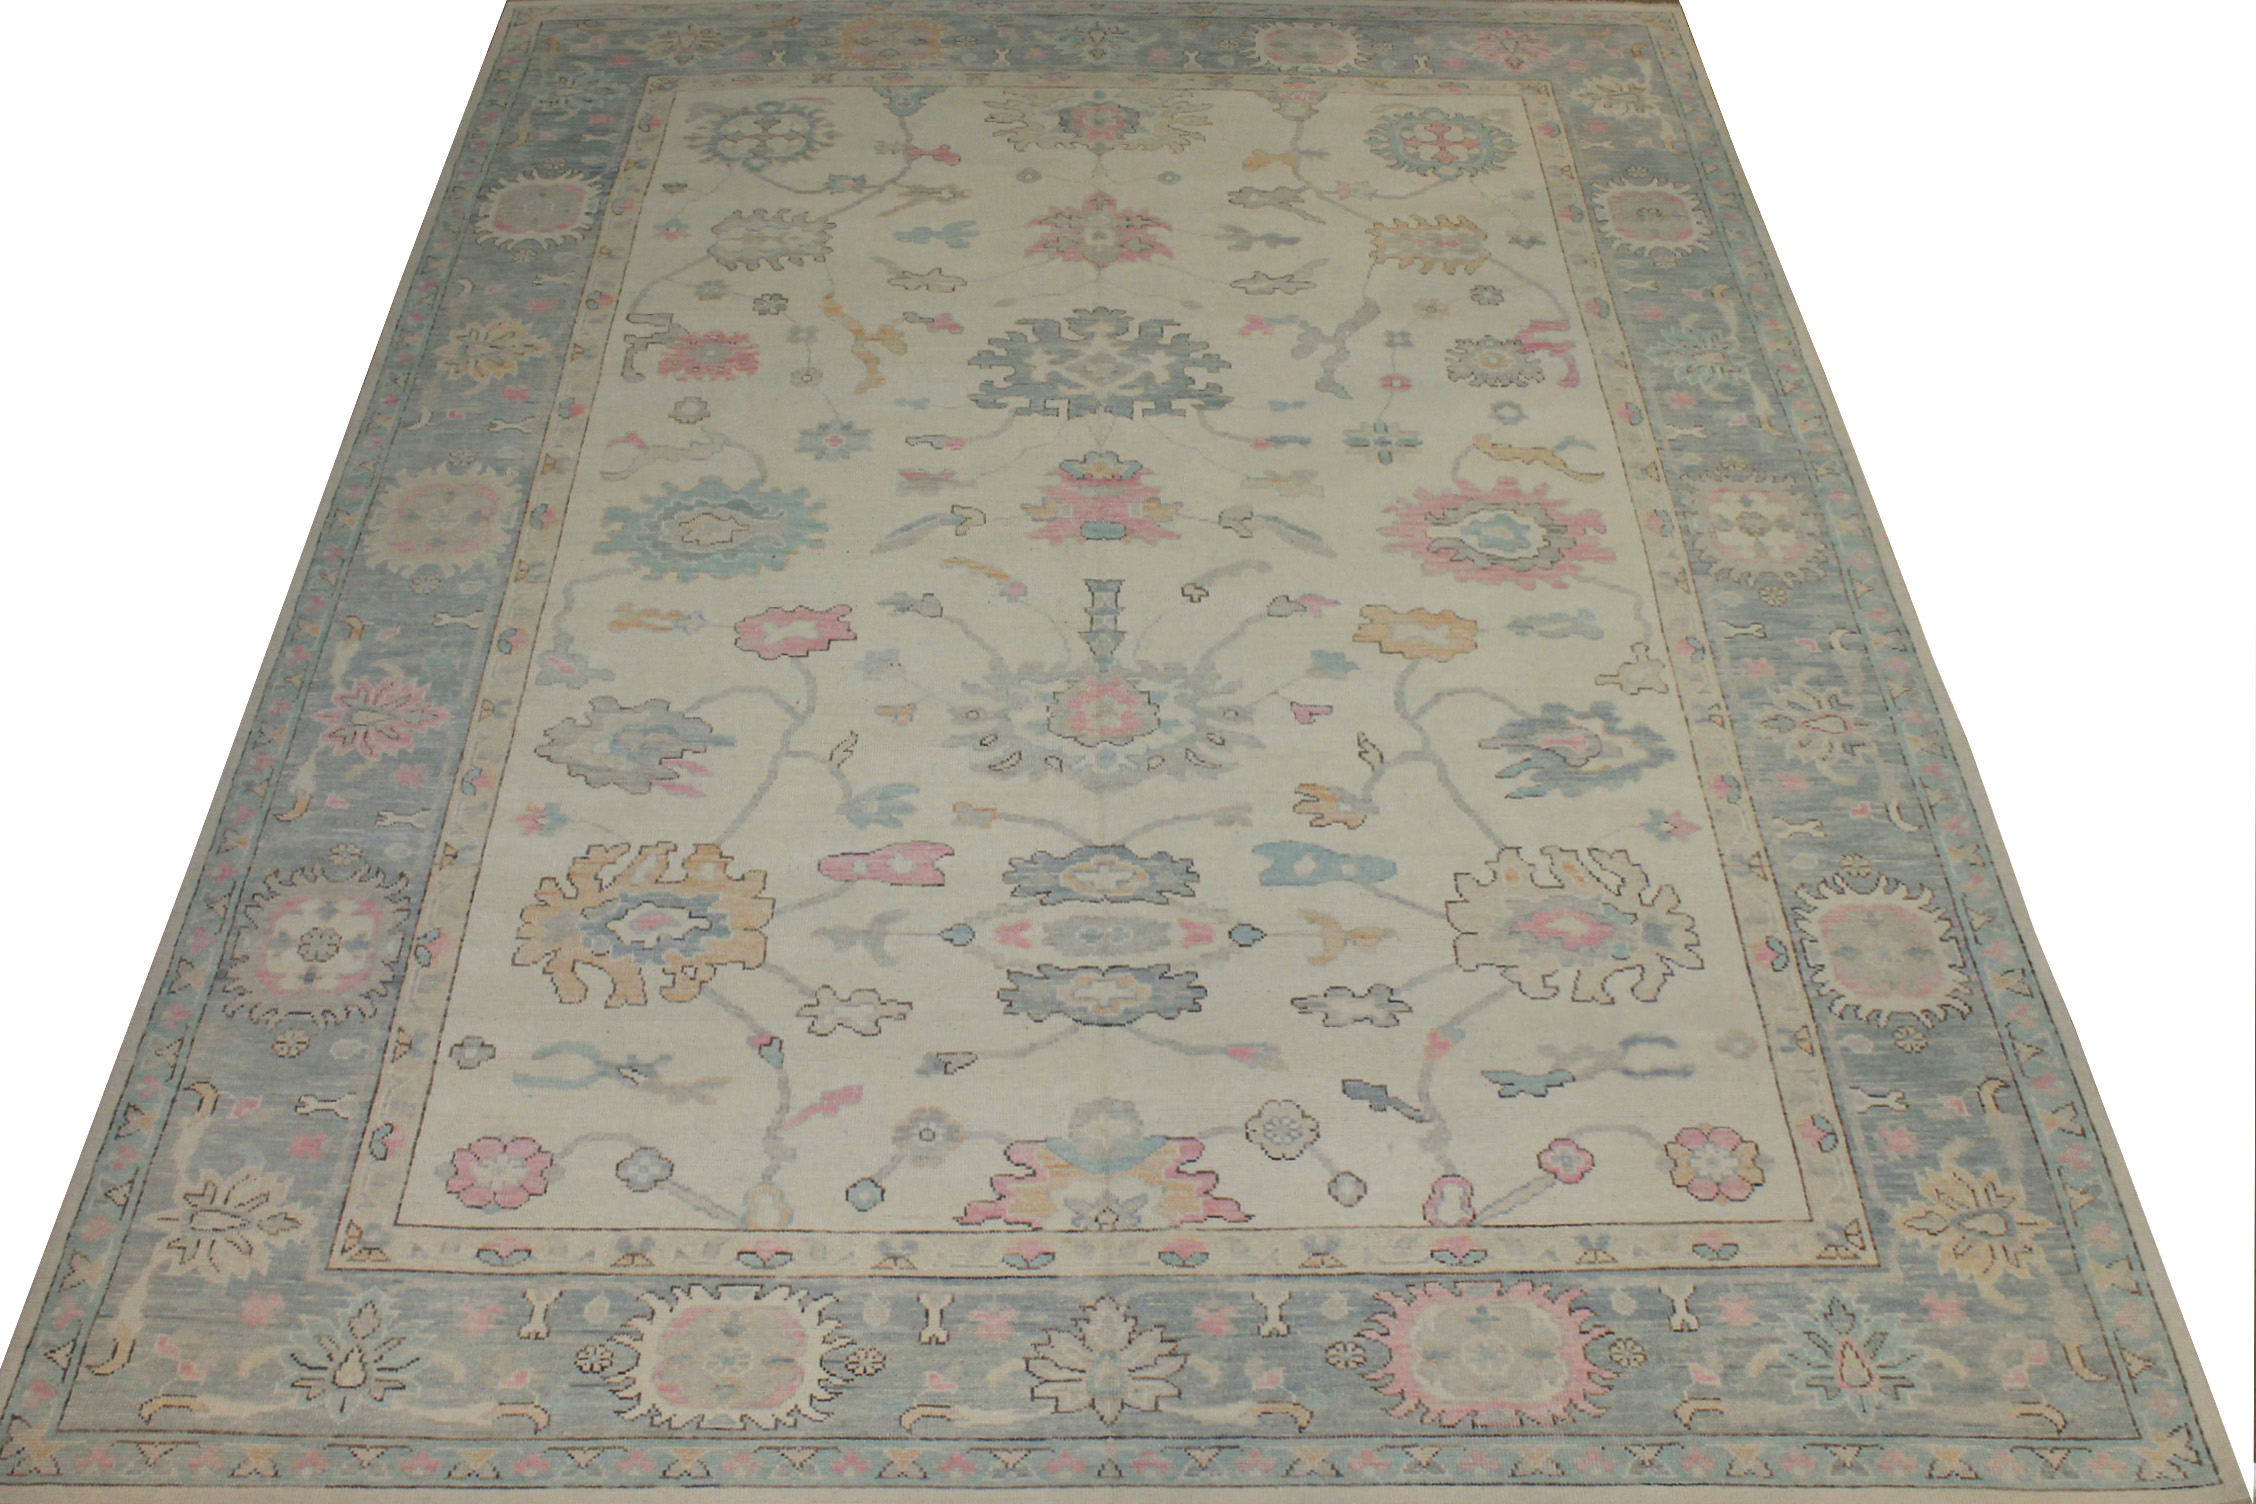 10x14 Oushak Hand Knotted Wool Area Rug - MR024427